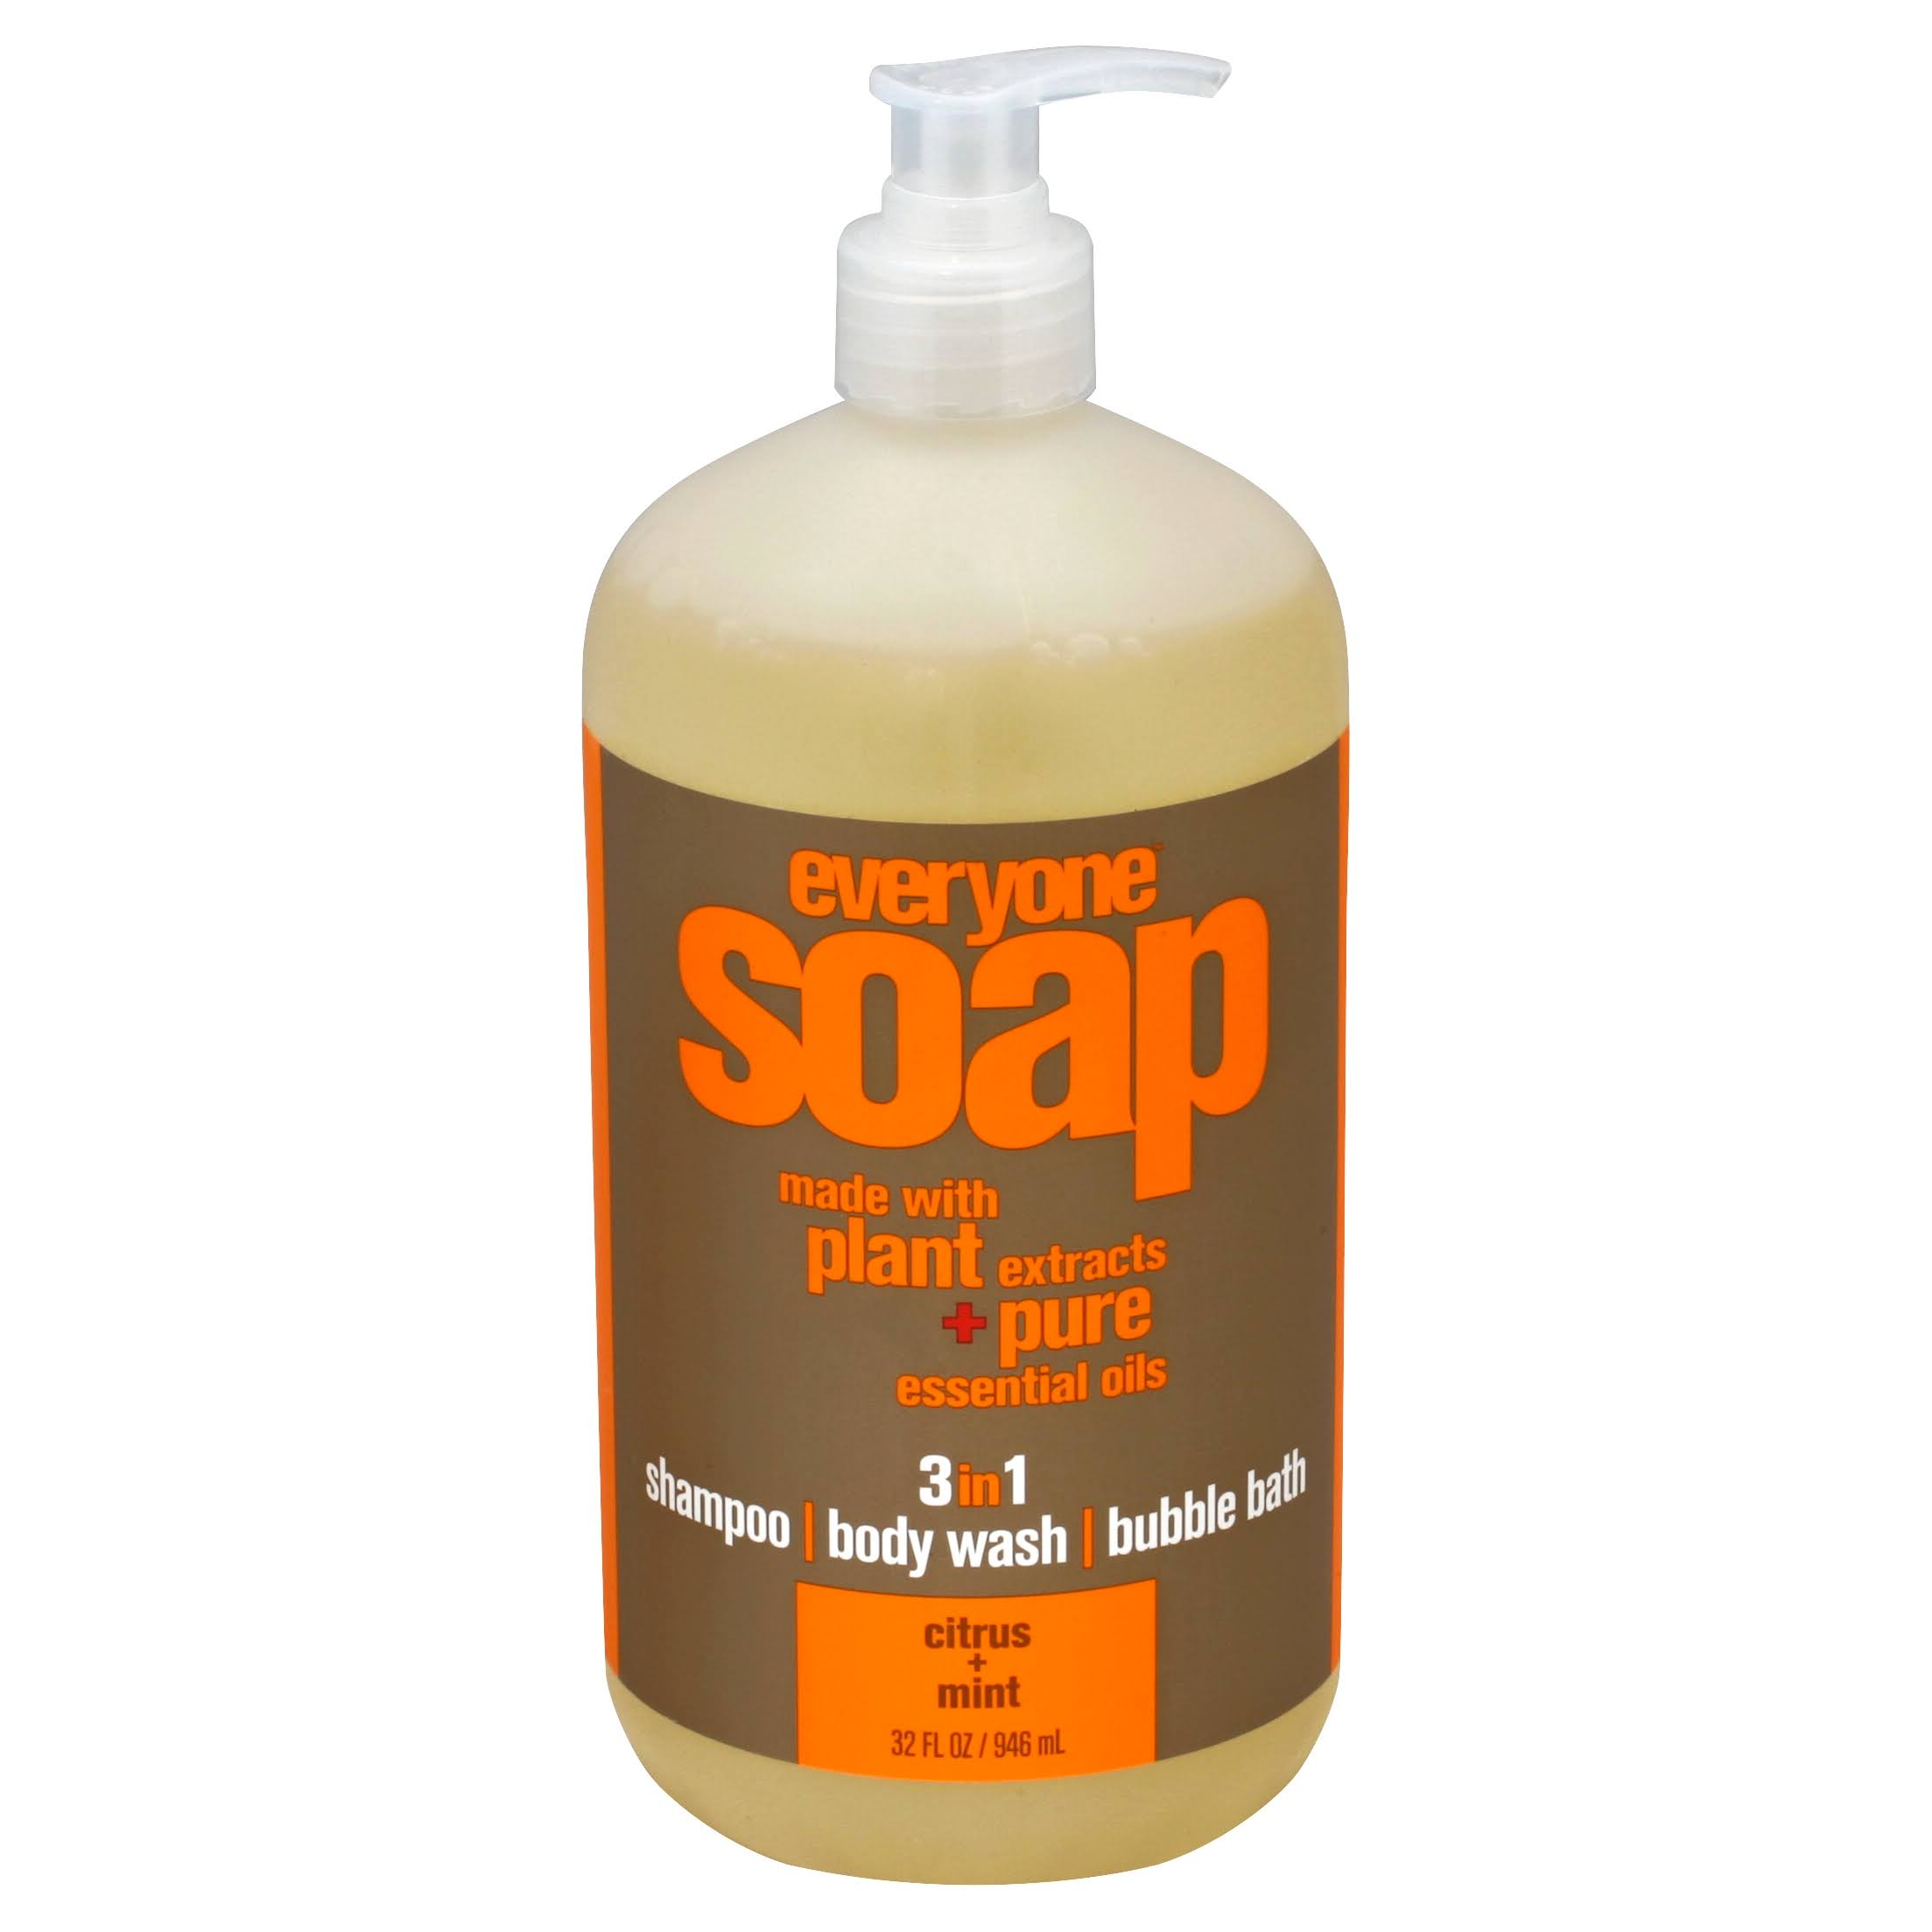 EO Products 3 in 1 Everyone Soap - Citrus Plus Mint, 32oz